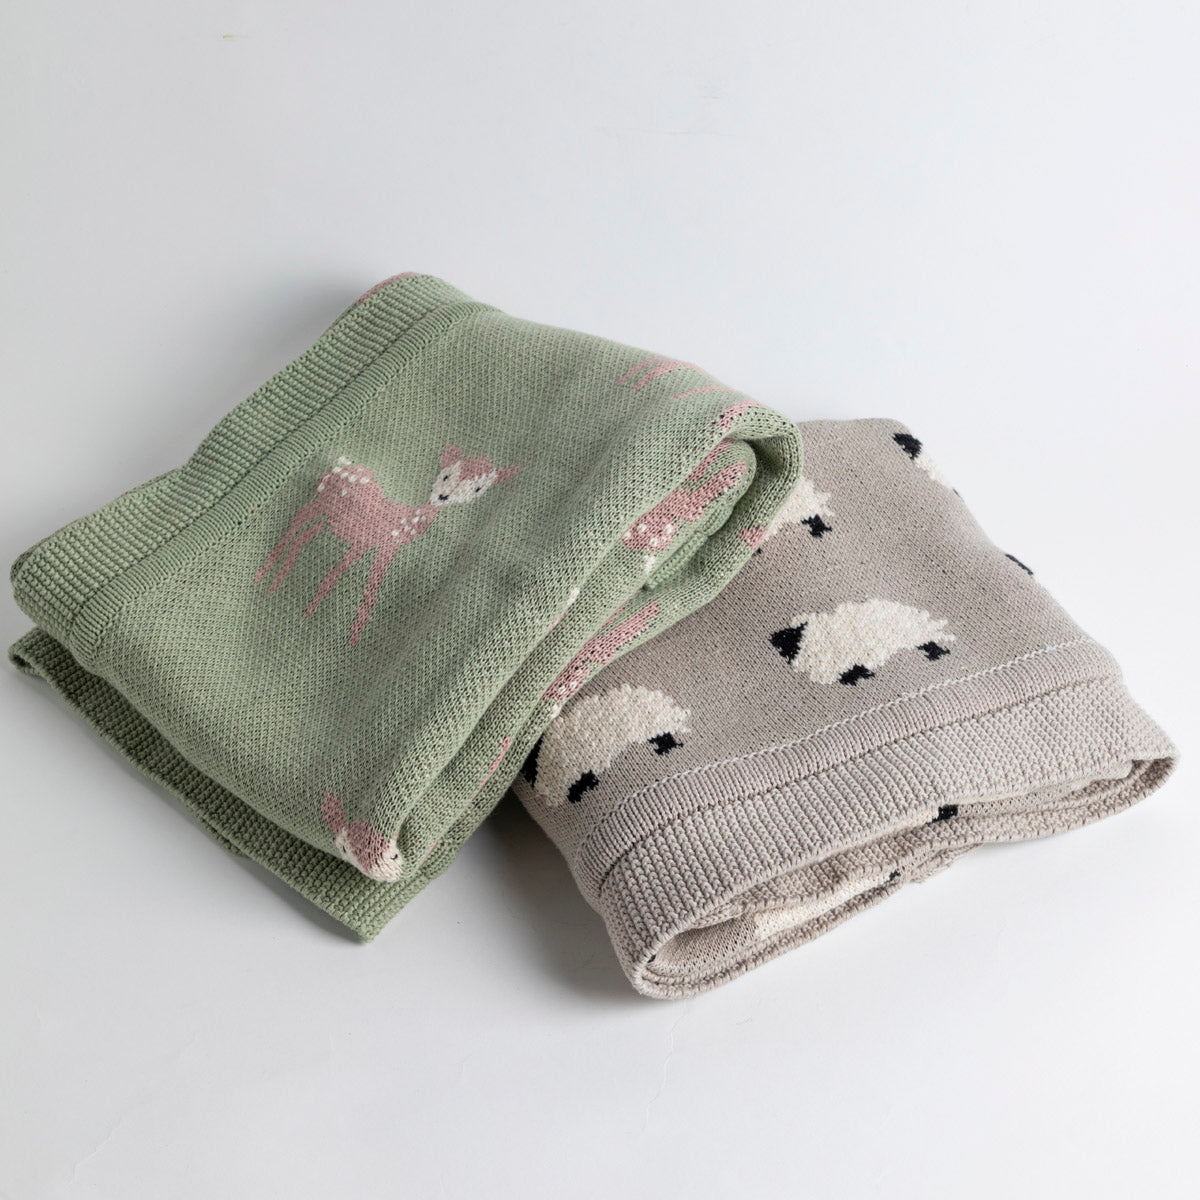 Cotton Knit Blanket Deer and Sheep- Picnic SF